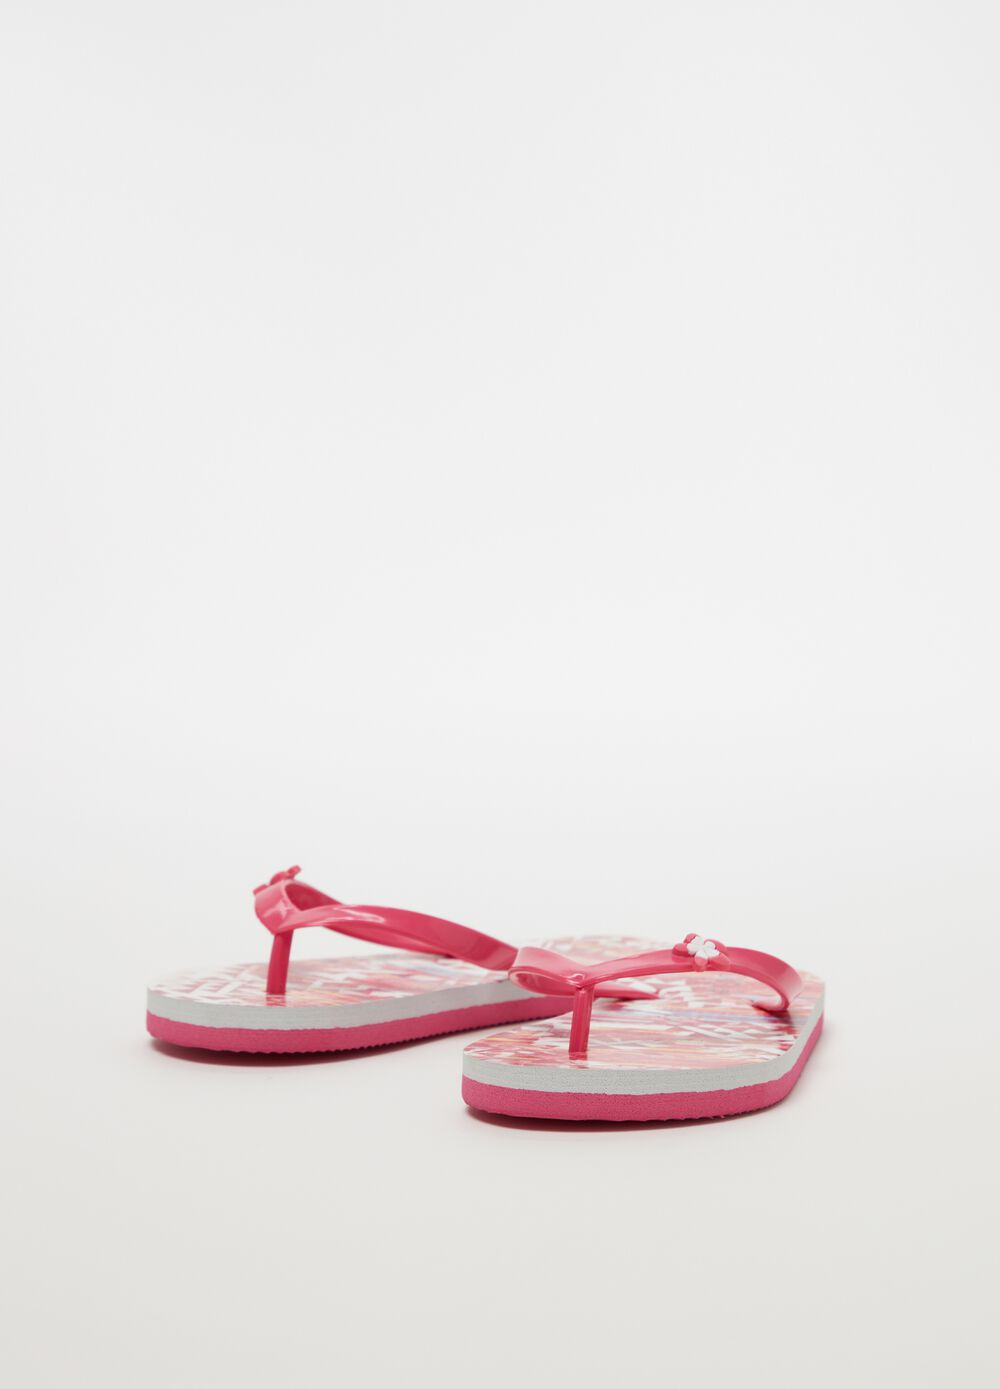 Thong sandals with flower and ethnic pattern